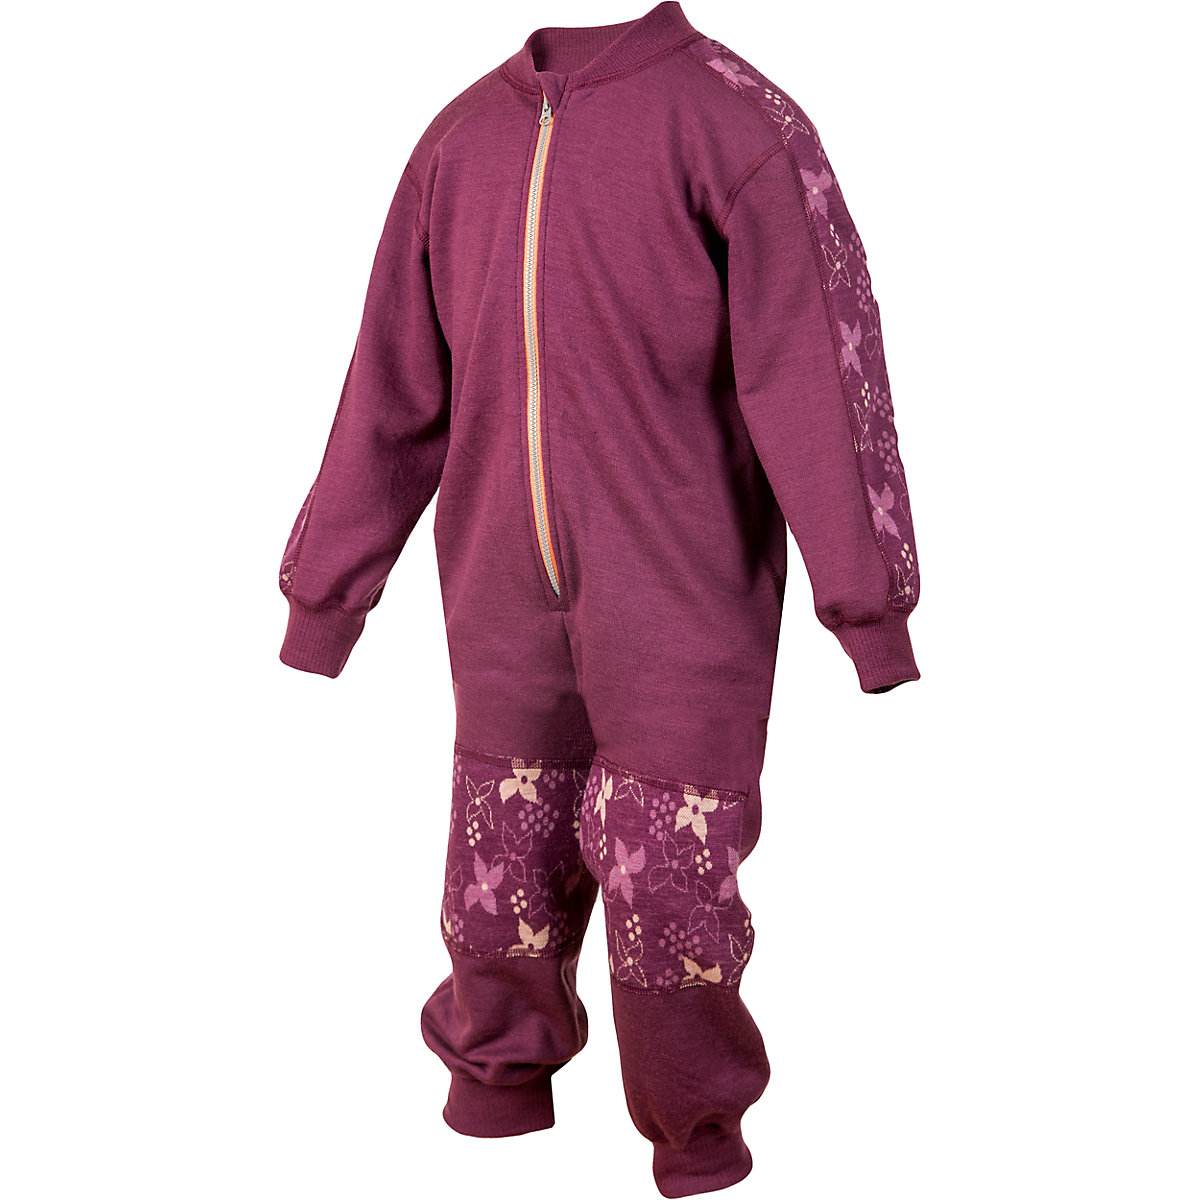 JANUS Rompers 7001501 baby clothing for girls wool girl Warm baby rompers 100